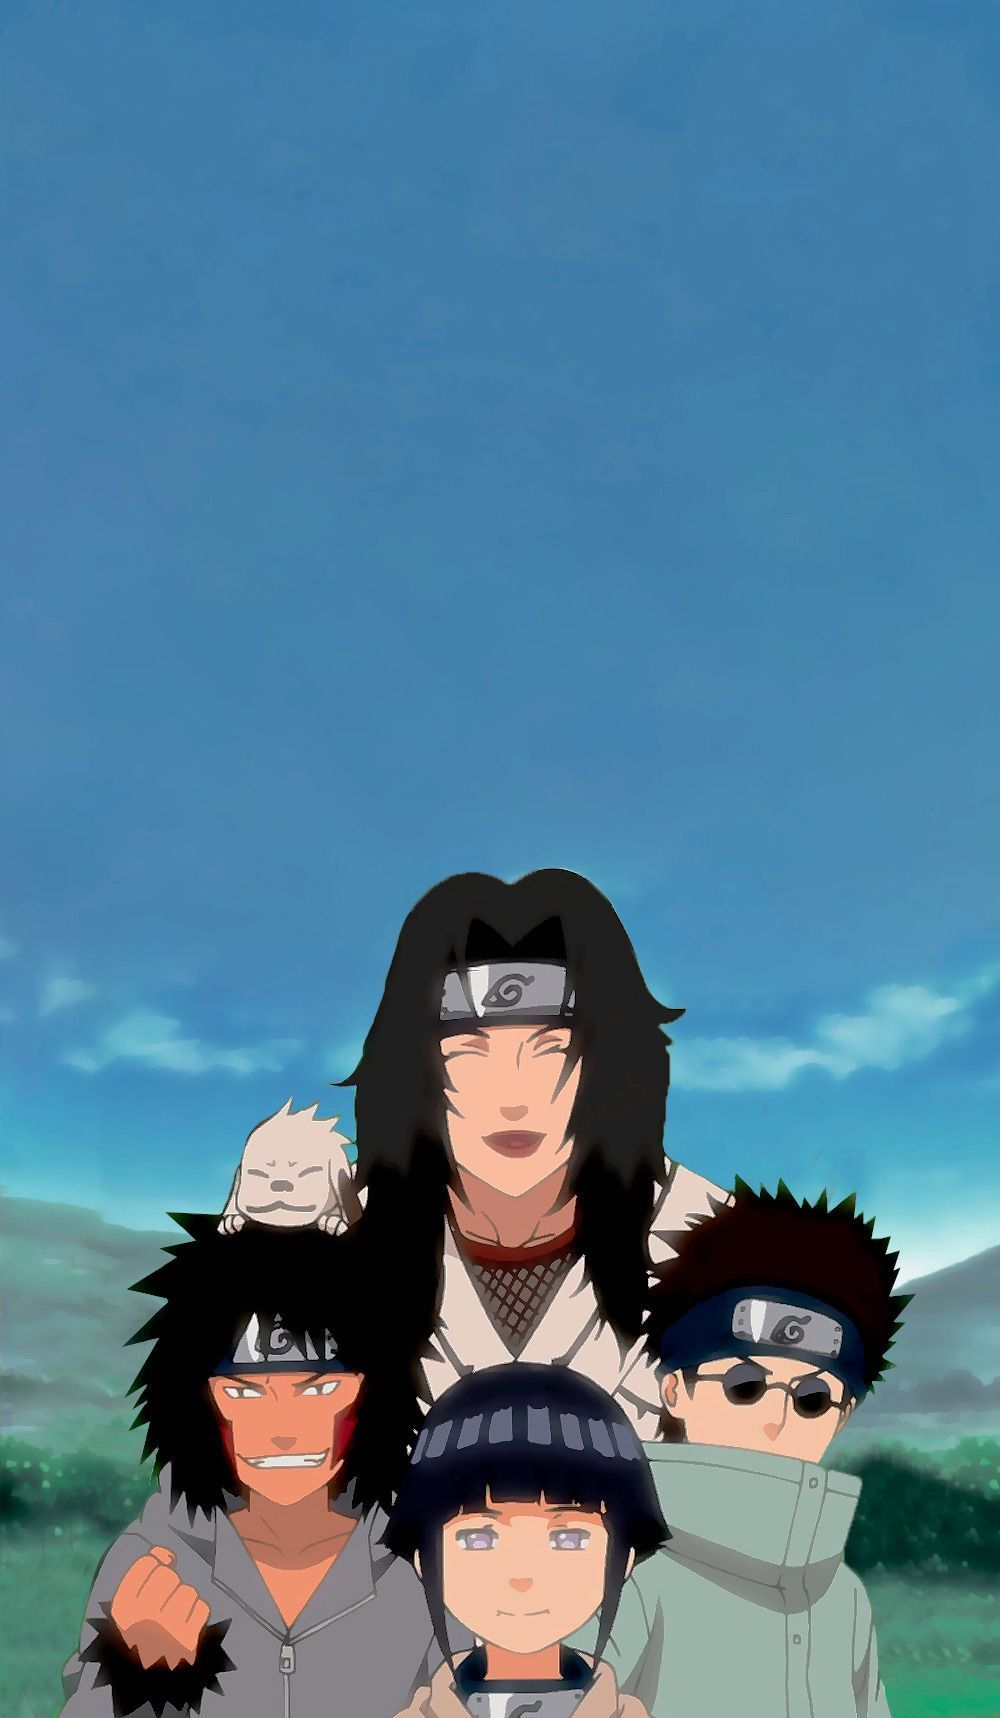 Team Kurenai | Team | Wallpaper #narutowallpaper Team Kurenai | Team | Wallpaper